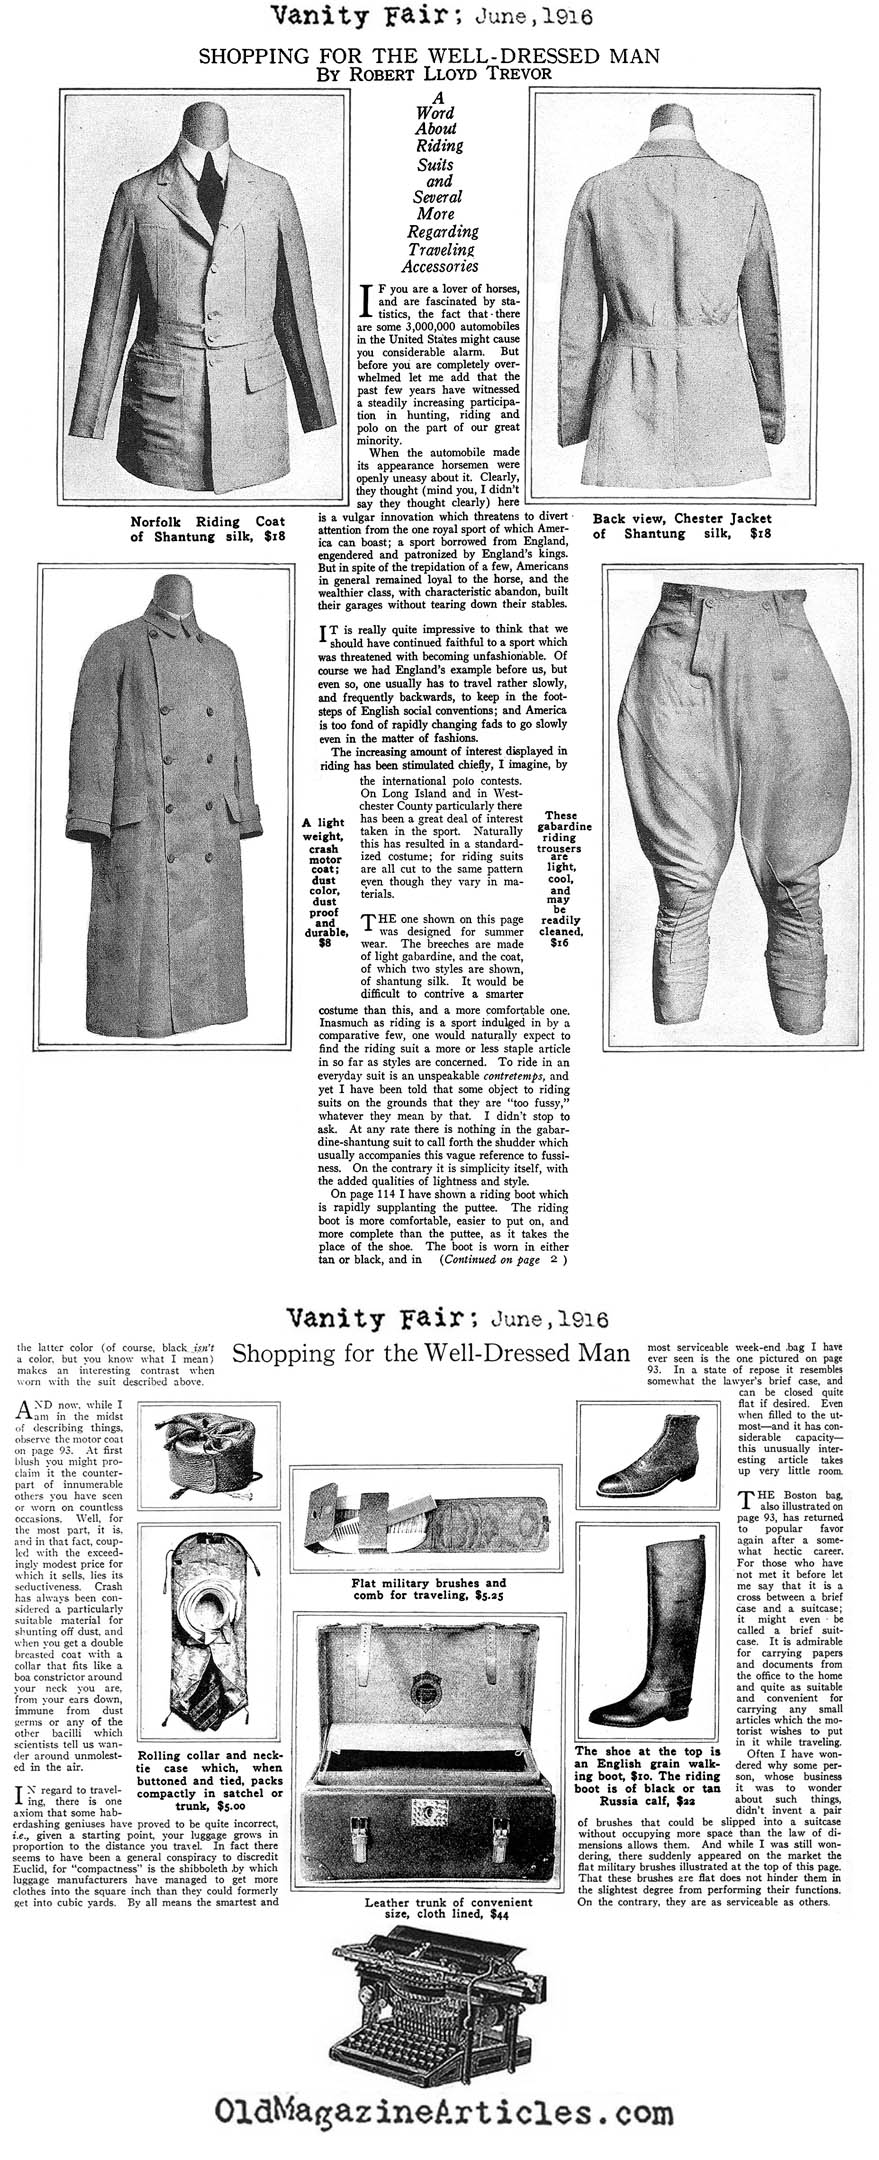 Equestrian Jackets 1916 Equestrian Man Clothing 1920s Magazine Article Man Horse Back Riding Clothing Fashion History Article Man Riding Habits 1920s Riding Jacket Magazine Article Concerning Mens Equestrian Suiting 1916 Man Equestrian Clothing Article